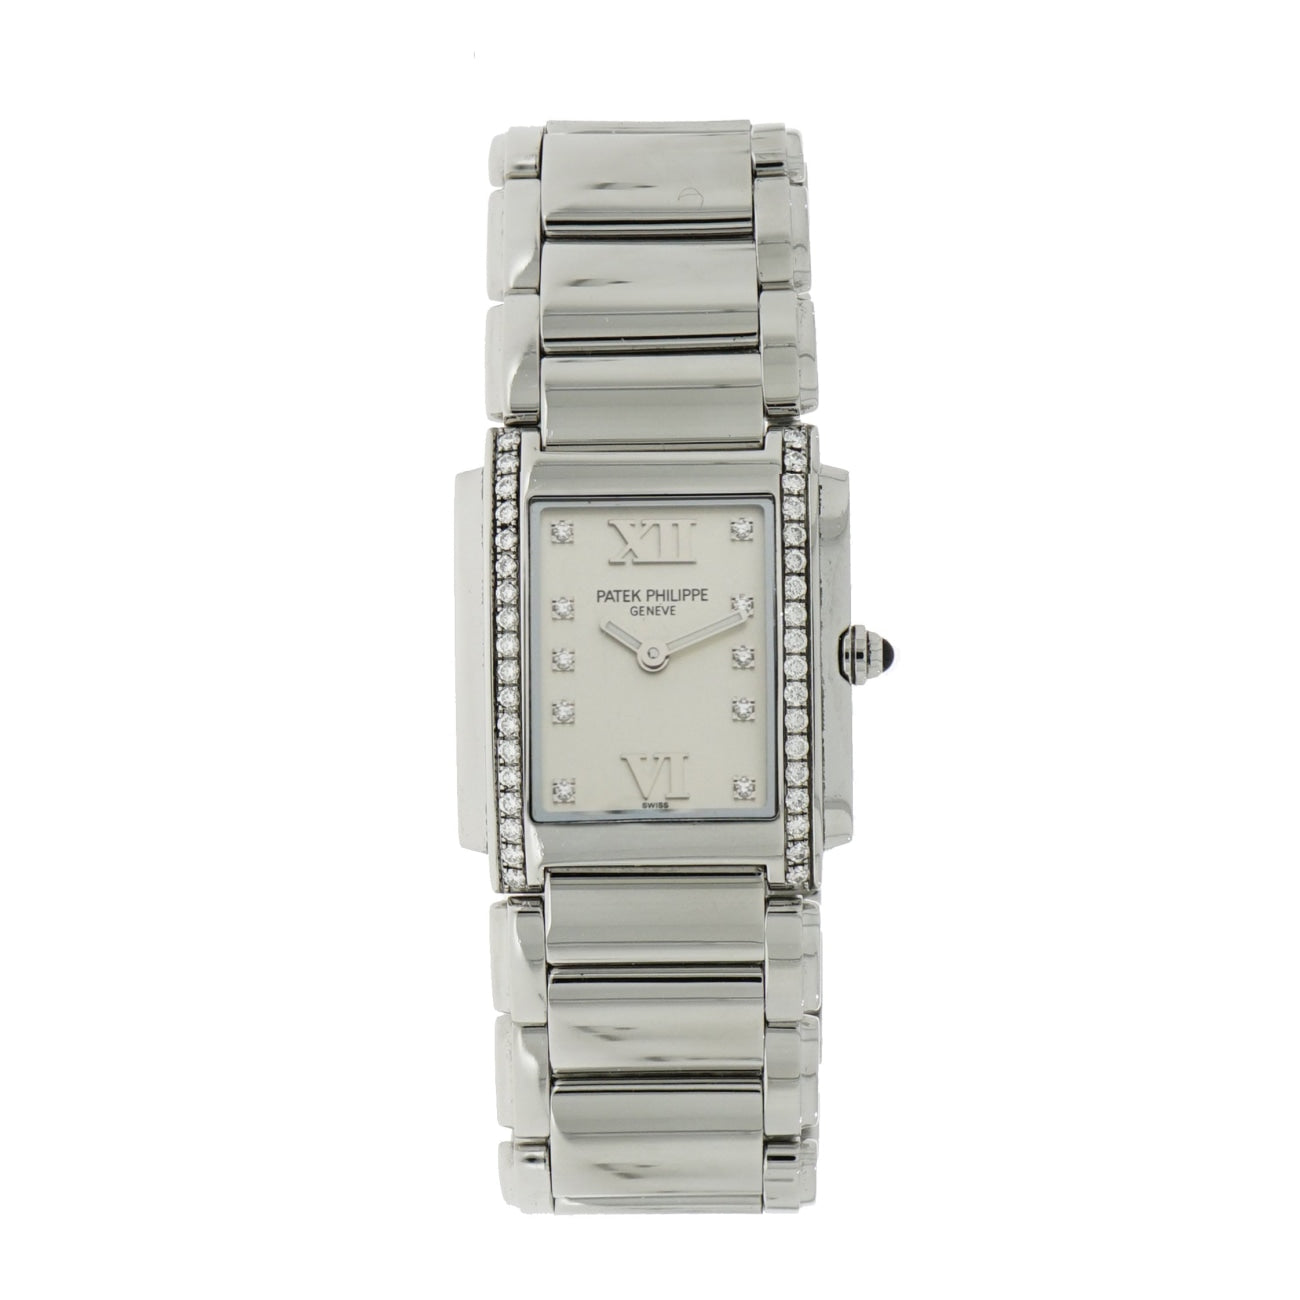 Pre-Owned Patek Philippe Watches - Twenty-4 | Manfredi Jewels